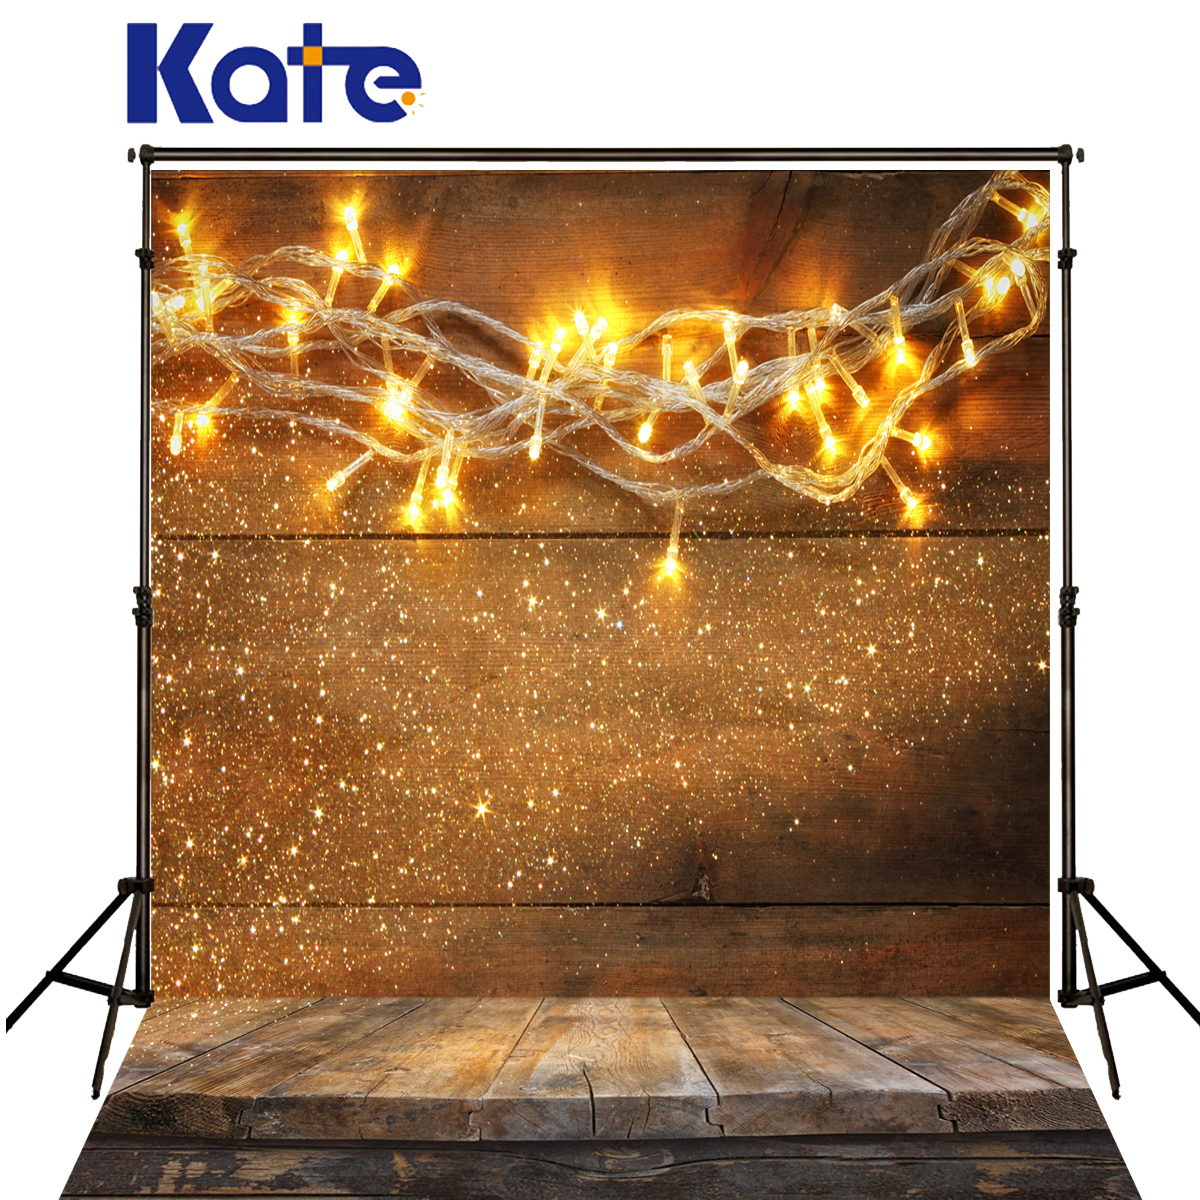 Kate Christmas Backgrounds Photo Colour Lights Spot Fundo Fotografico Madeira Dark Wood Texture Floor Backdrops For Photo Studio kate newborn baby backgrounds fotografia light wood wall fundo fotografico madeira old wooden floor backdrops for photo studio